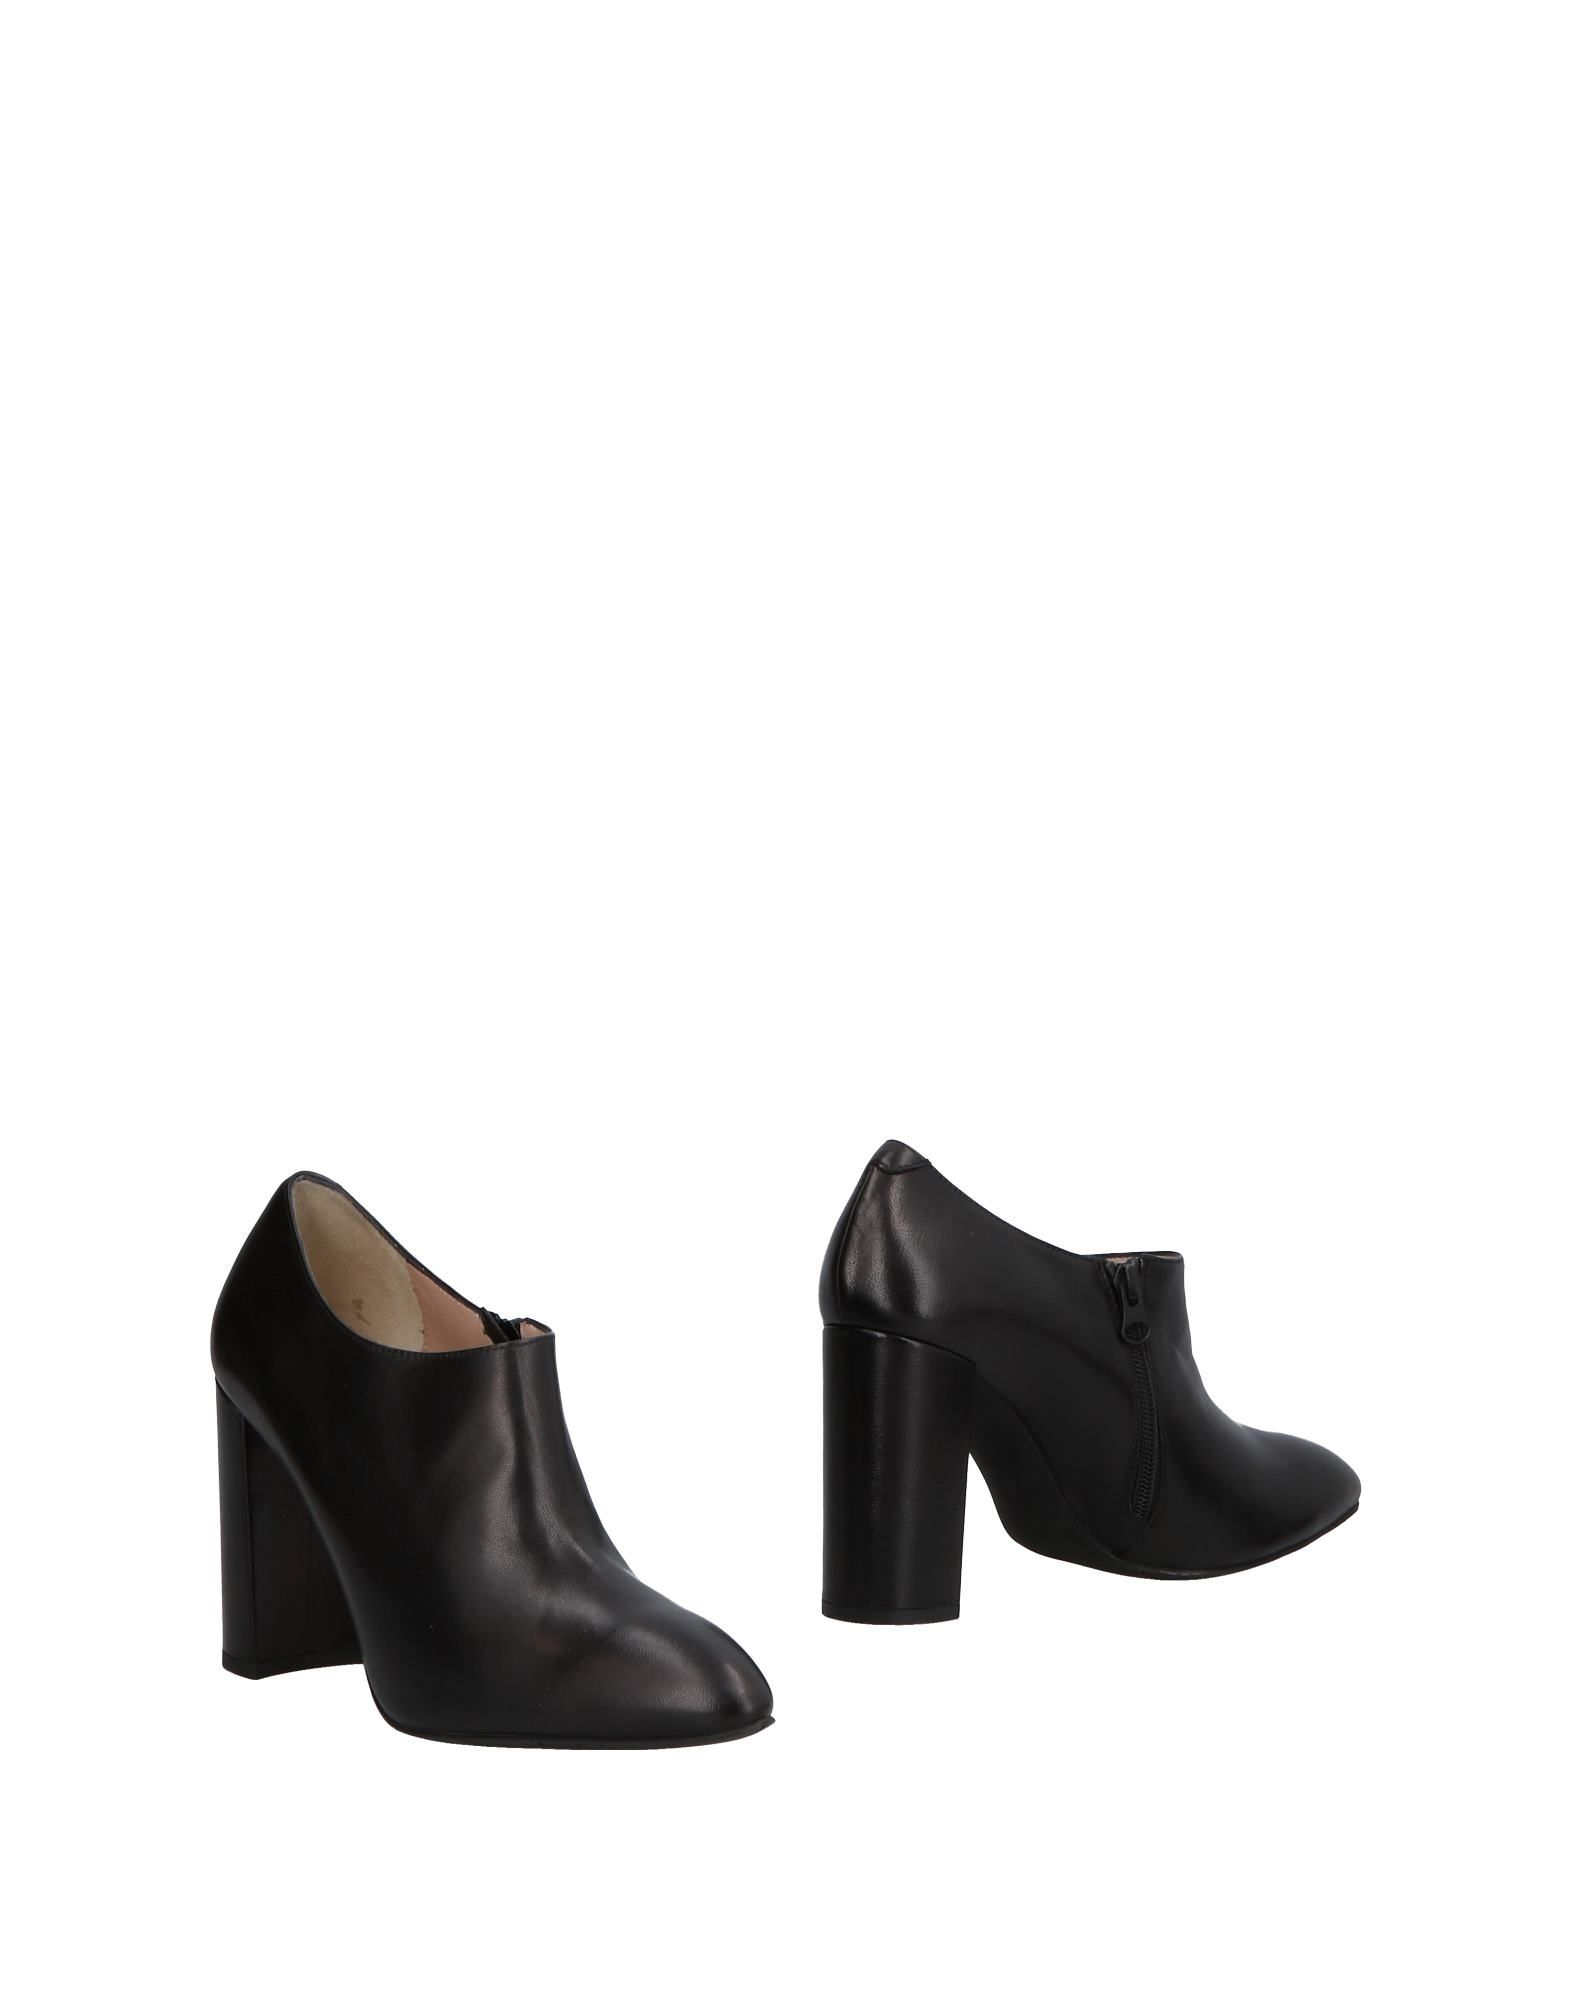 cheap sale great deals GIORGIA B. Ankle boots ebay sale online outlet where to buy buy cheap extremely xhCRDJK